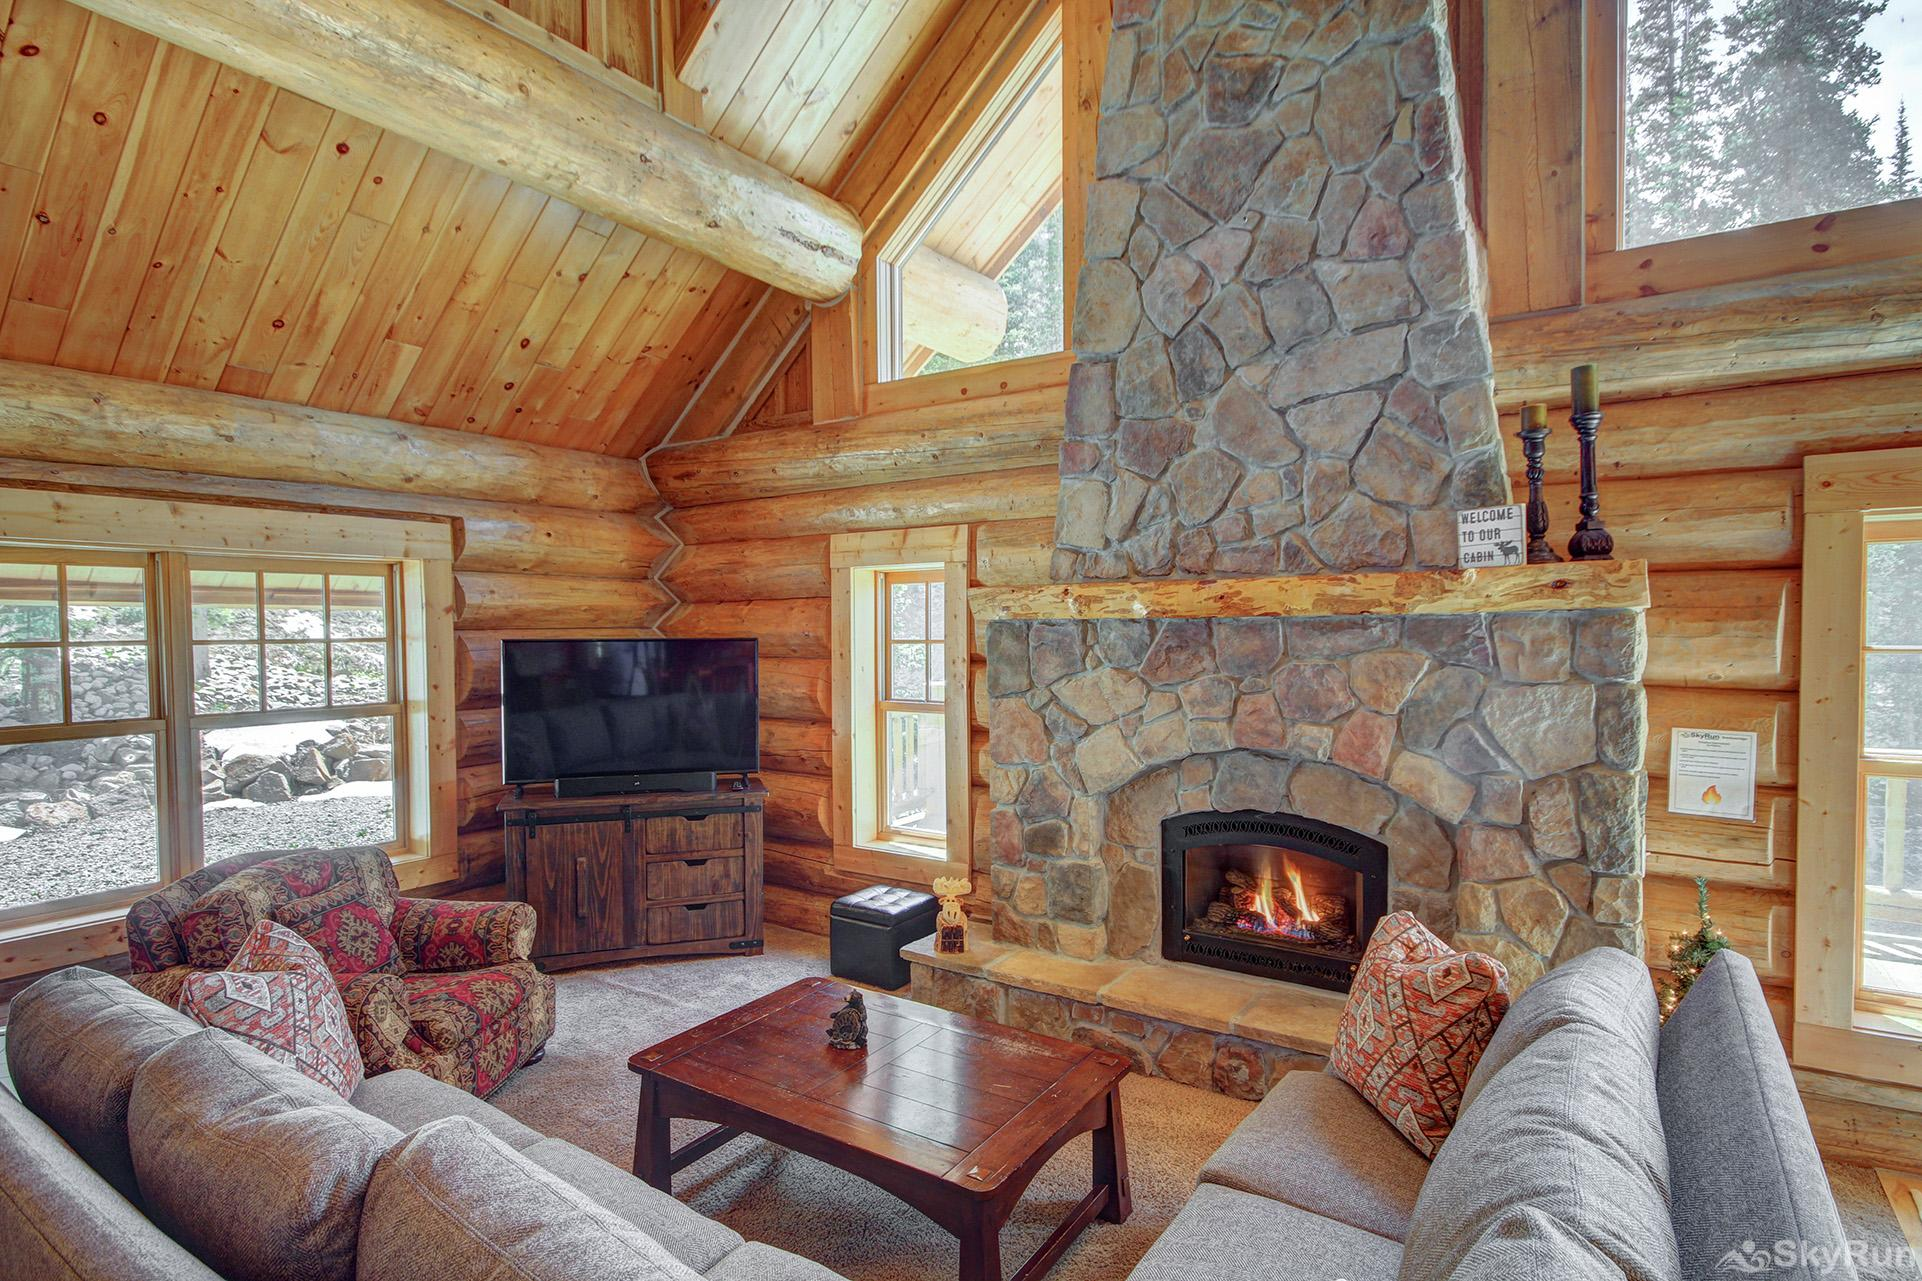 Timber Ridge Lodge Stay cozy warm by the gas fireplace on those cold winter nights